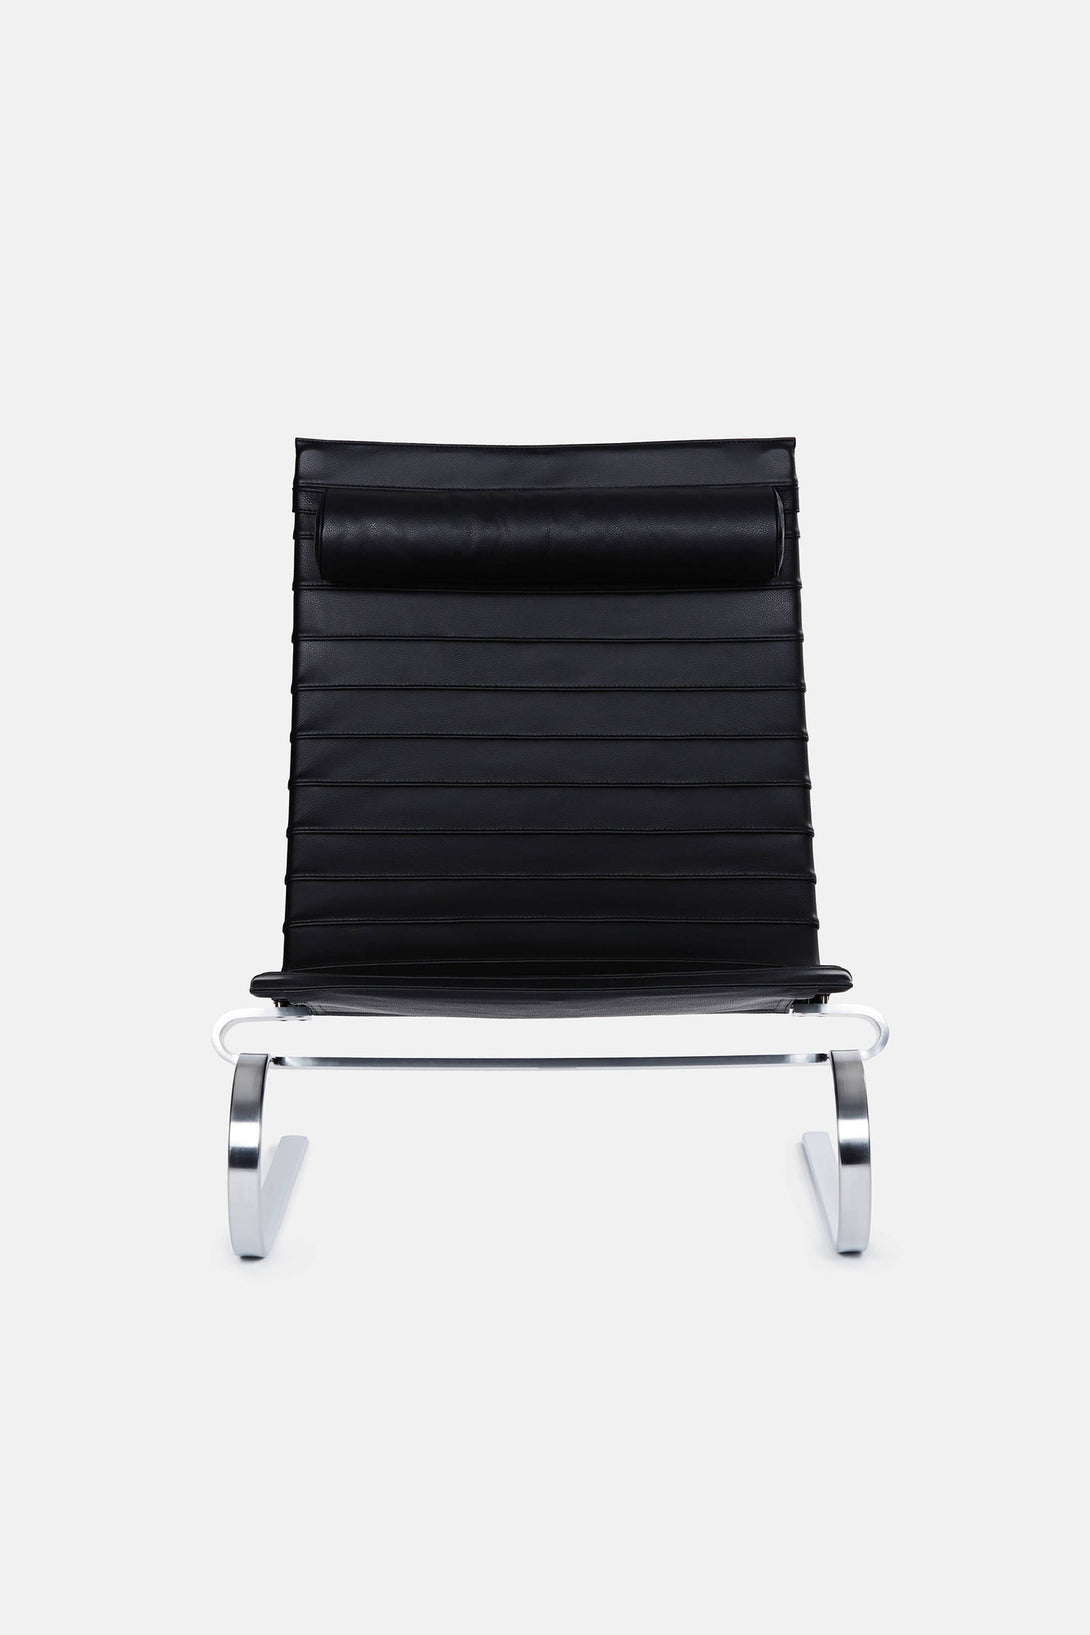 PK20 Lounge Chair - Black Leather